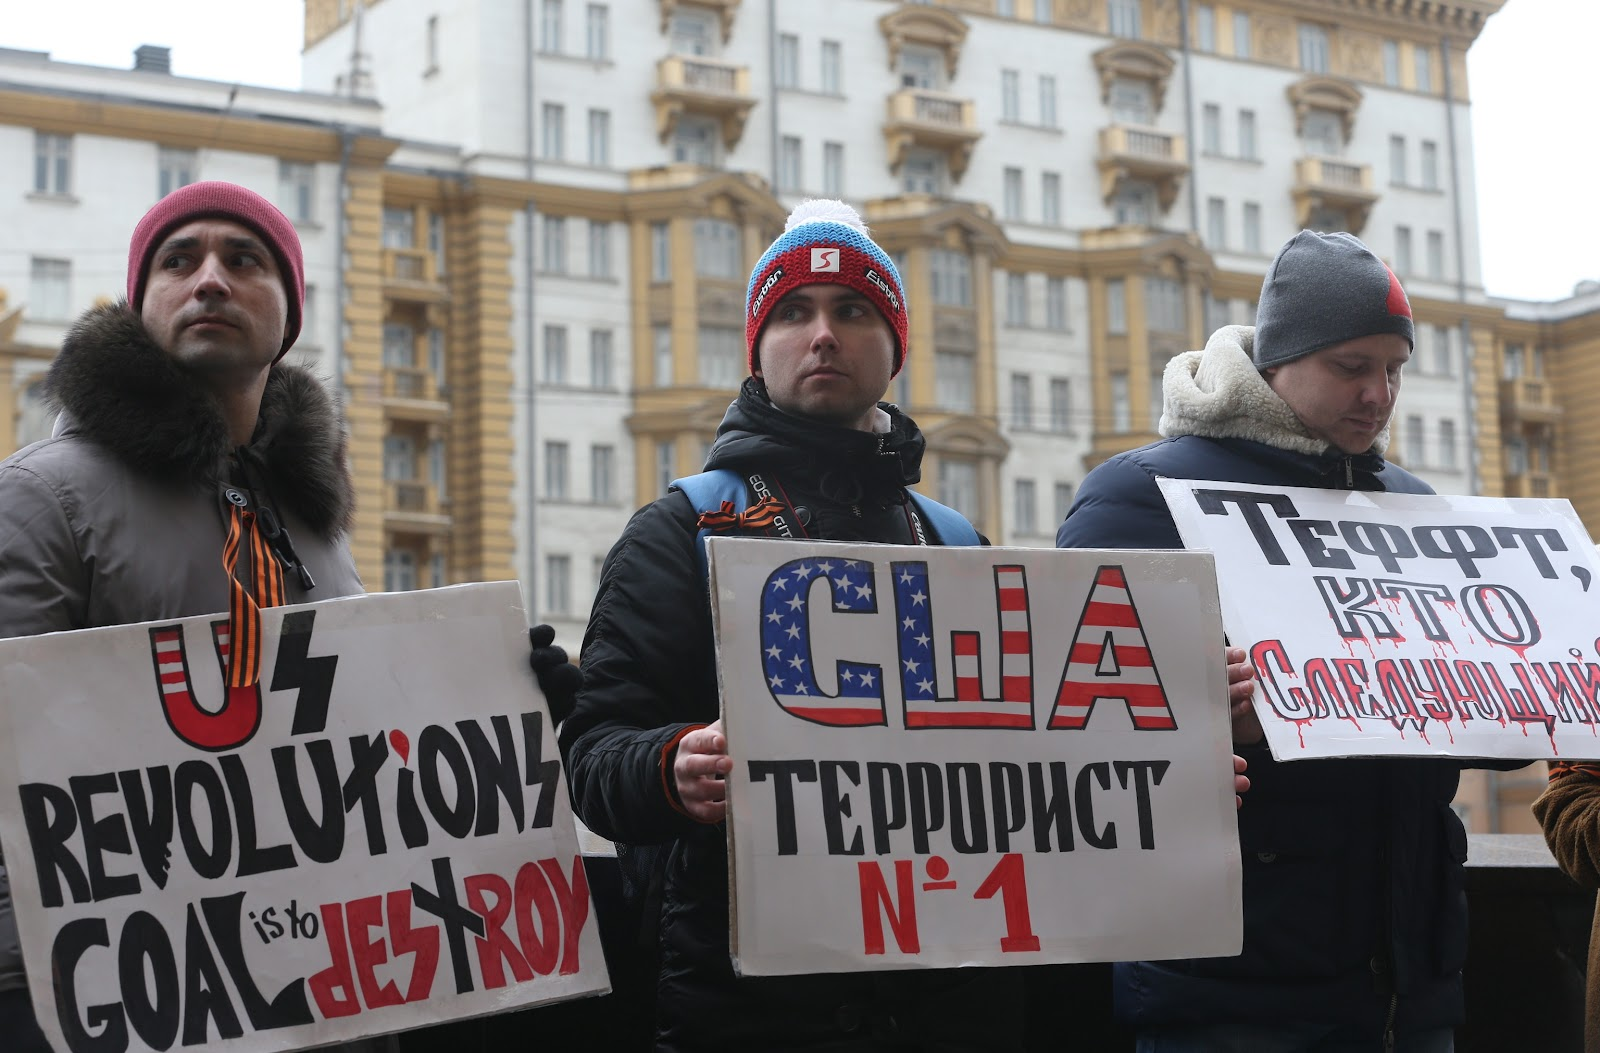 From harmless jokes about USA and Americans, the official media transitioned to hatred and positioned the country in the public's eye as Russia's #1 enemy. Photo: intersectionproject.eu